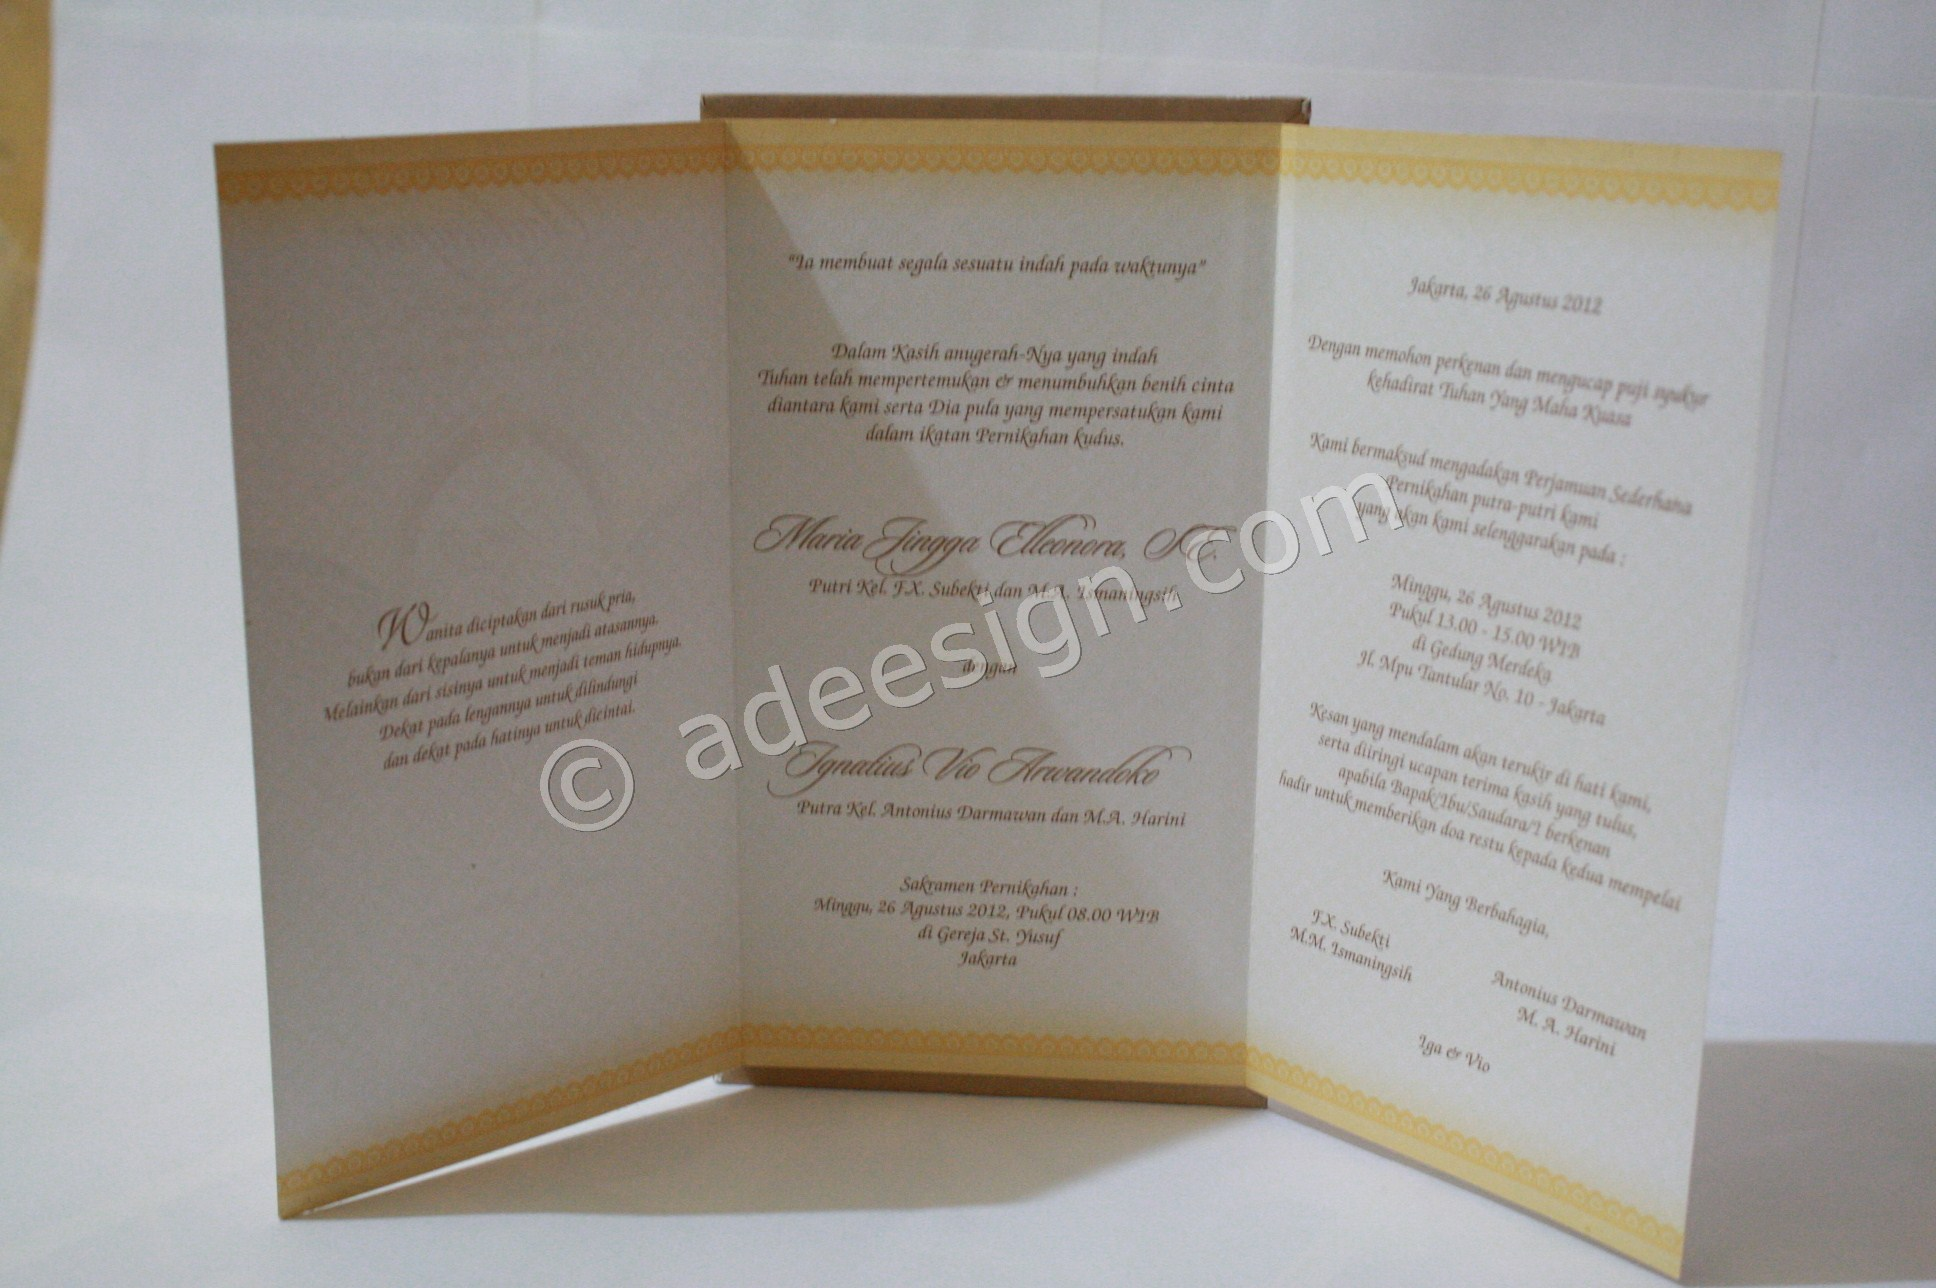 Kartu Undangan Pernikahan Semi Hard Cover Iga dan Vio 3 - Membuat Wedding Invitations Unik dan Simple di Sawahan